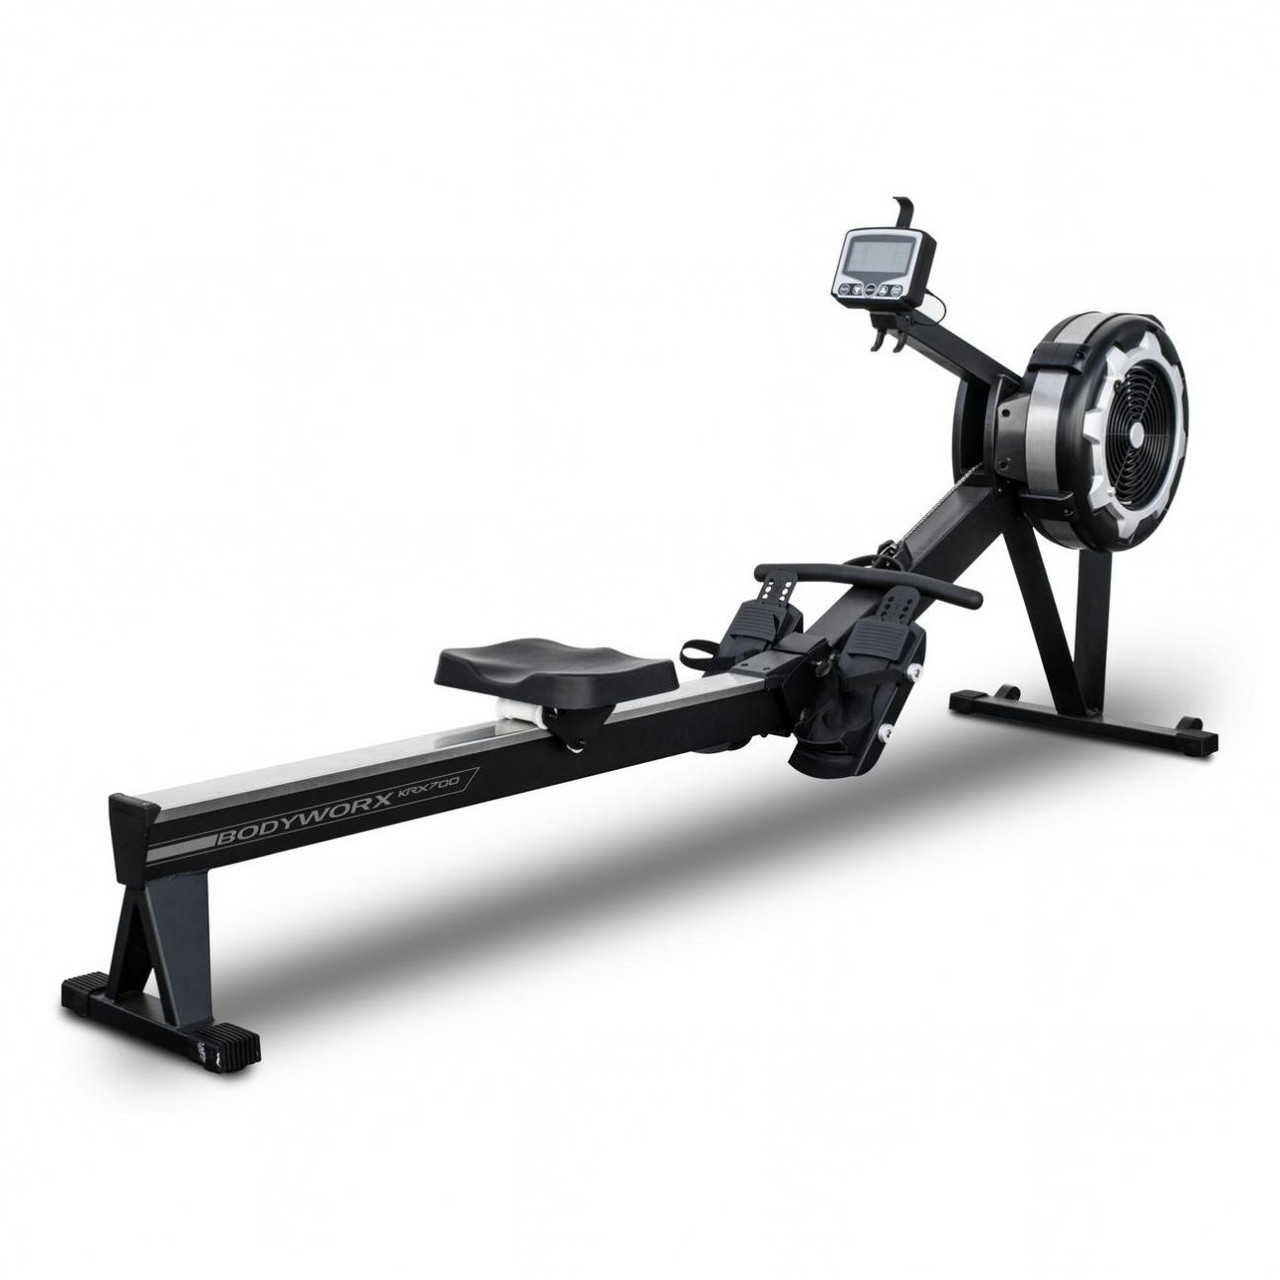 BodyWorx KRX980 Concept-2-style Rowing Machine